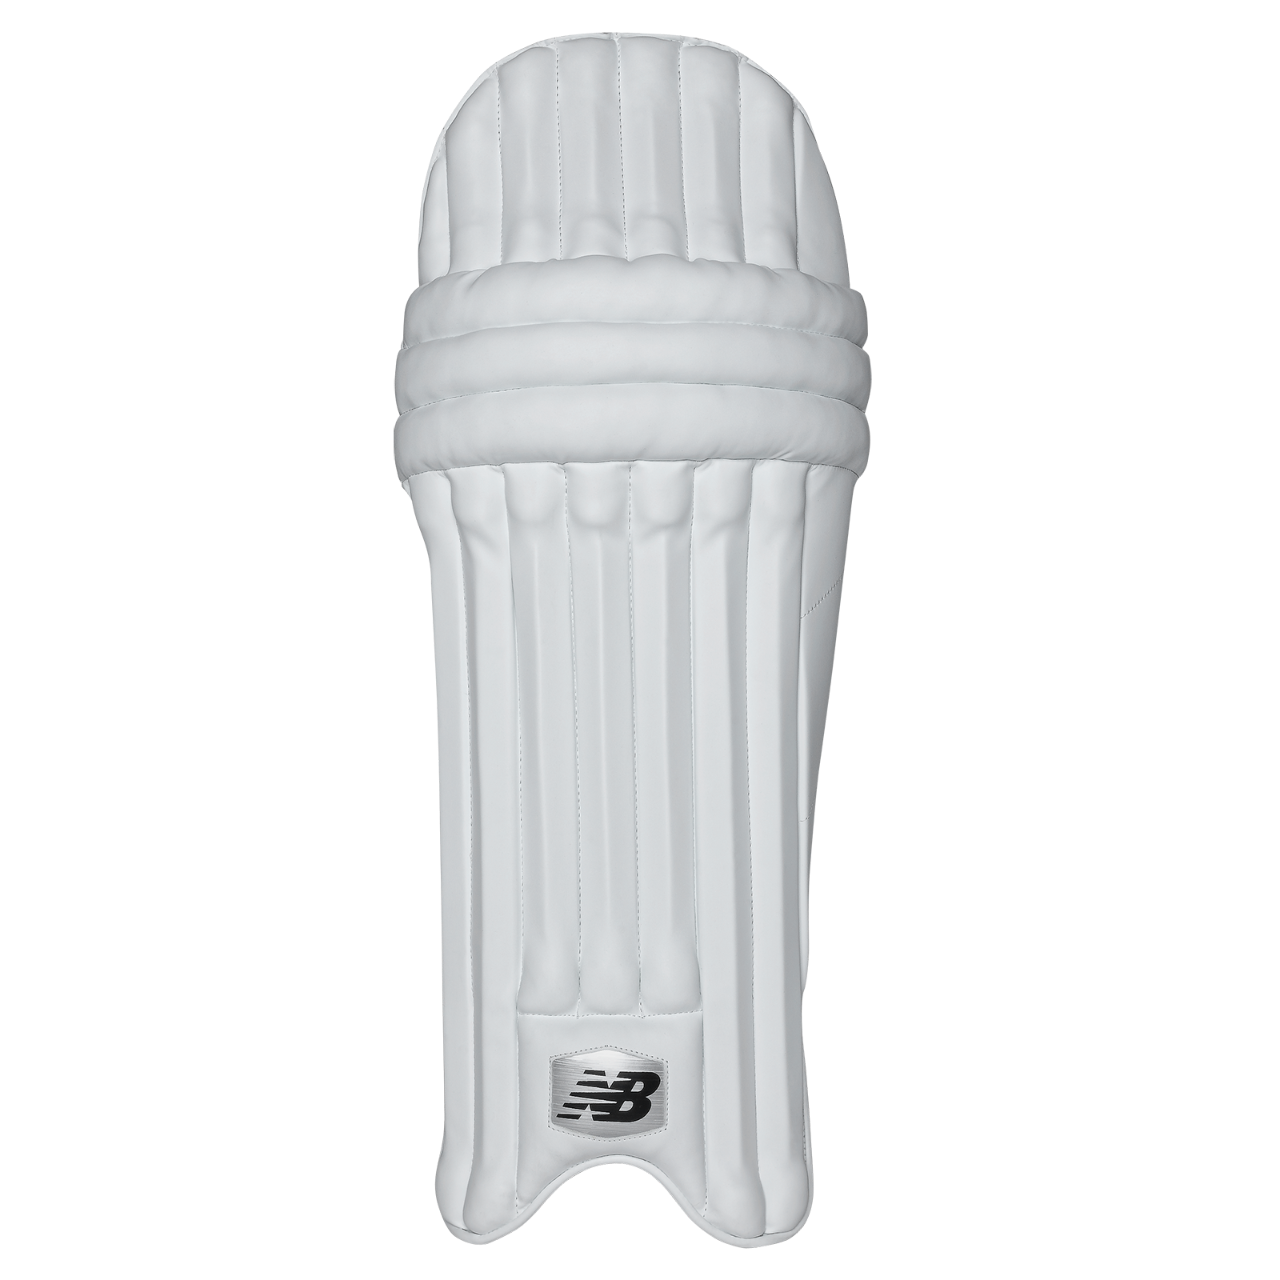 2021 New Balance TC 560 Junior Batting Pads